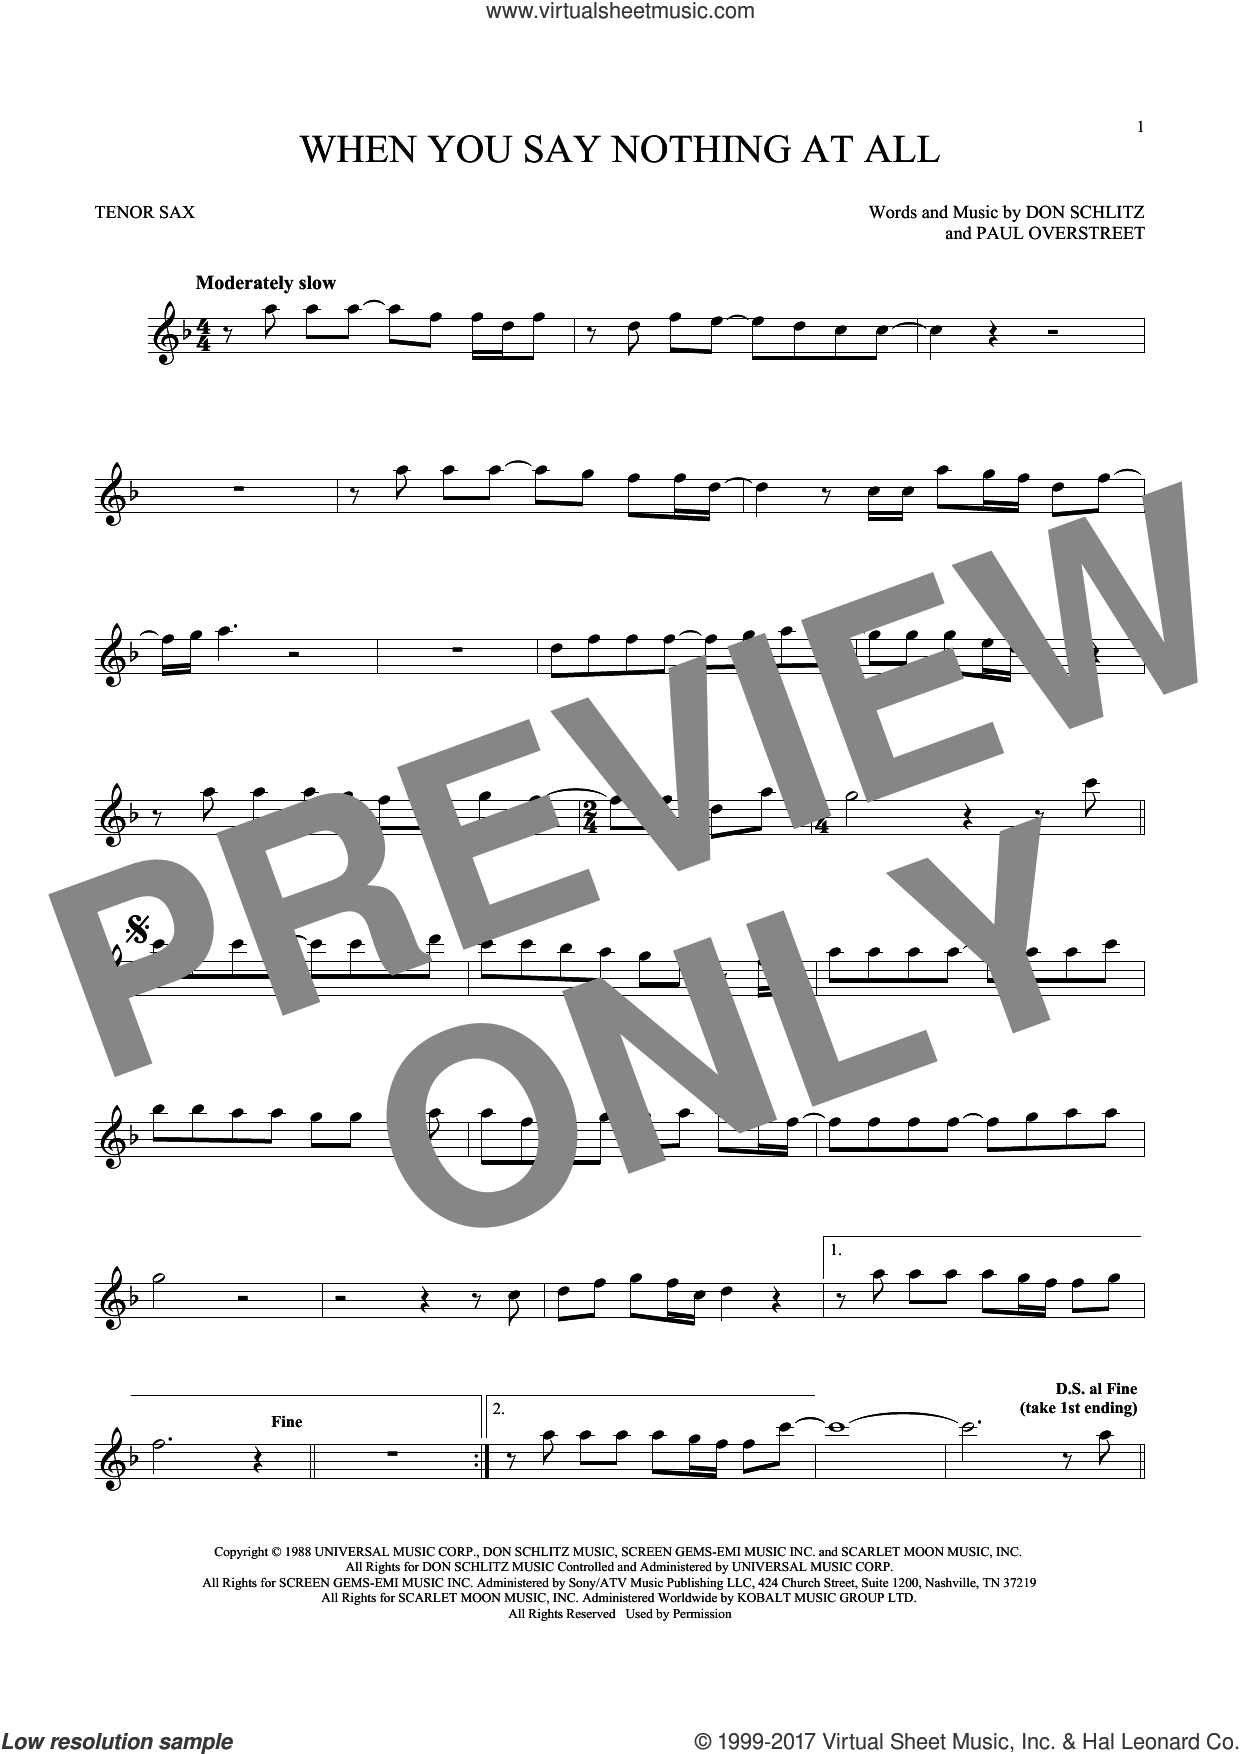 When You Say Nothing At All sheet music for tenor saxophone solo by Alison Krauss & Union Station, Keith Whitley, Don Schlitz and Paul Overstreet, wedding score, intermediate skill level